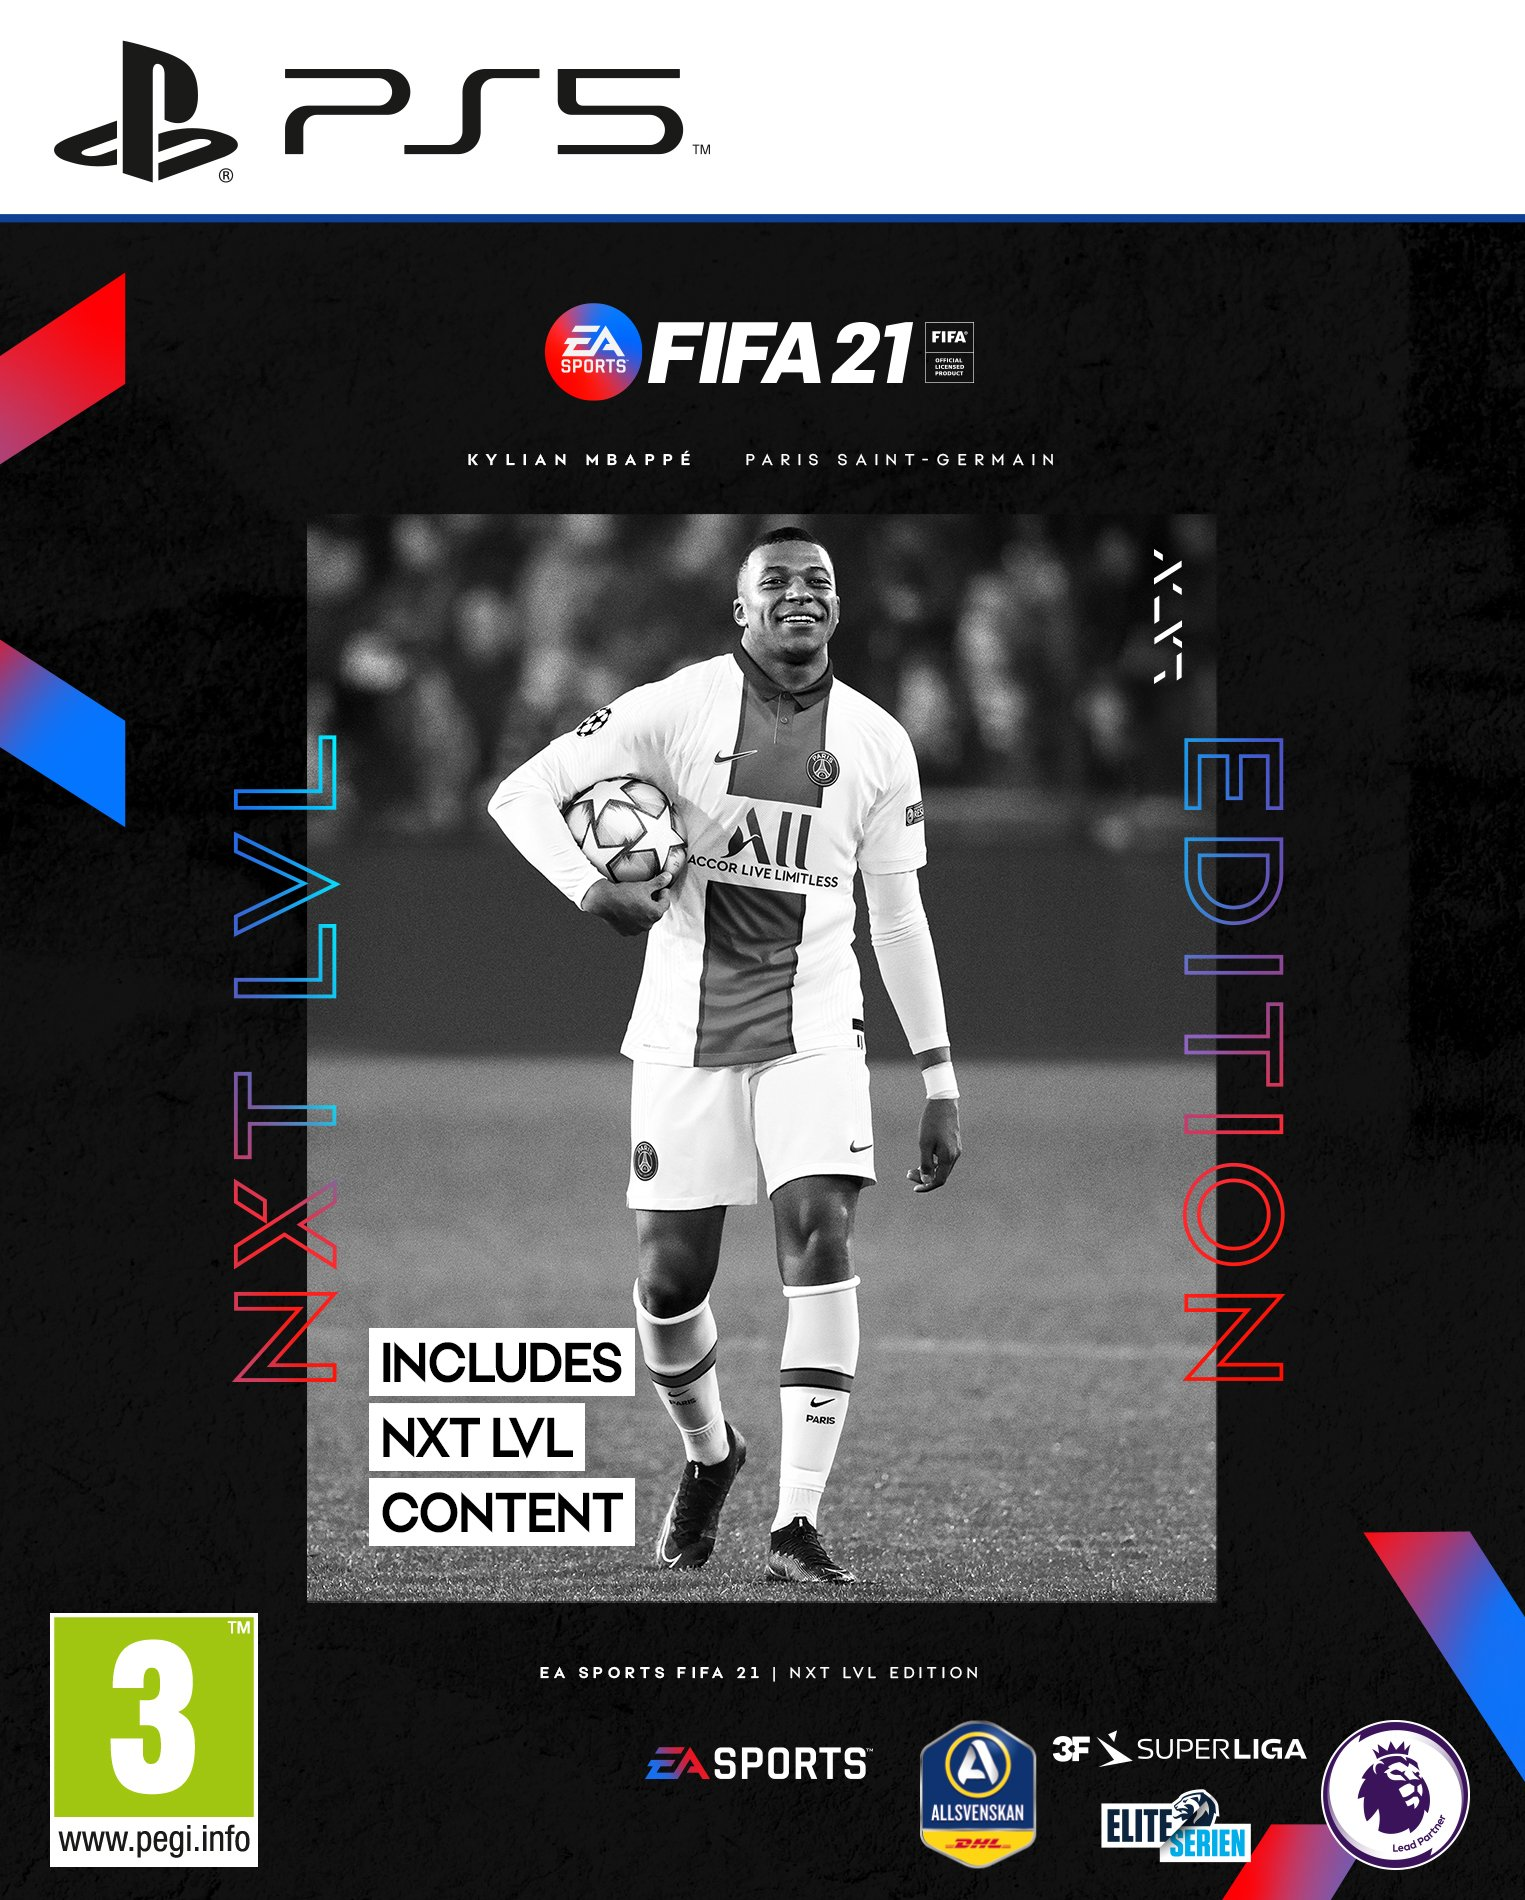 coolshop.co.uk - FIFA 21 NXT LVL Edition (Nordic)